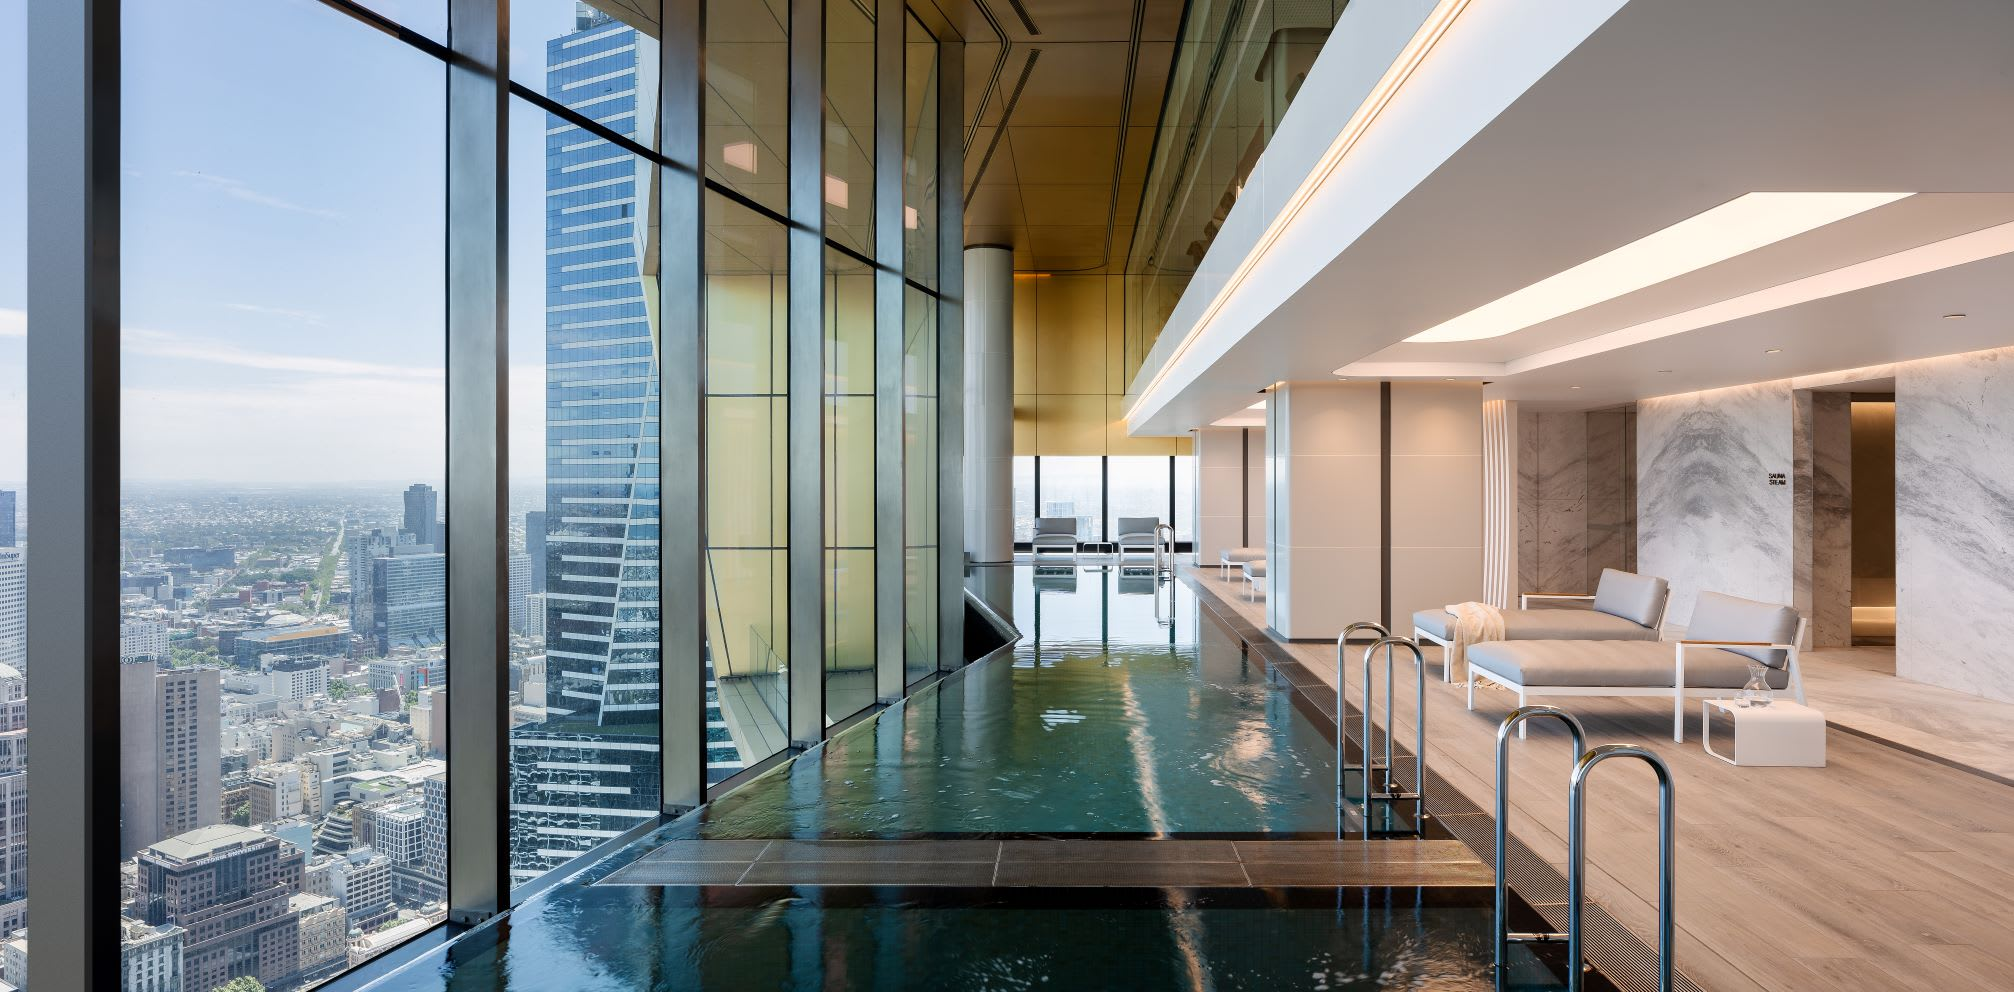 World Class Global unveils the southern hemisphere's highest twin infinity pools at landmark Melbourne development Australia 108